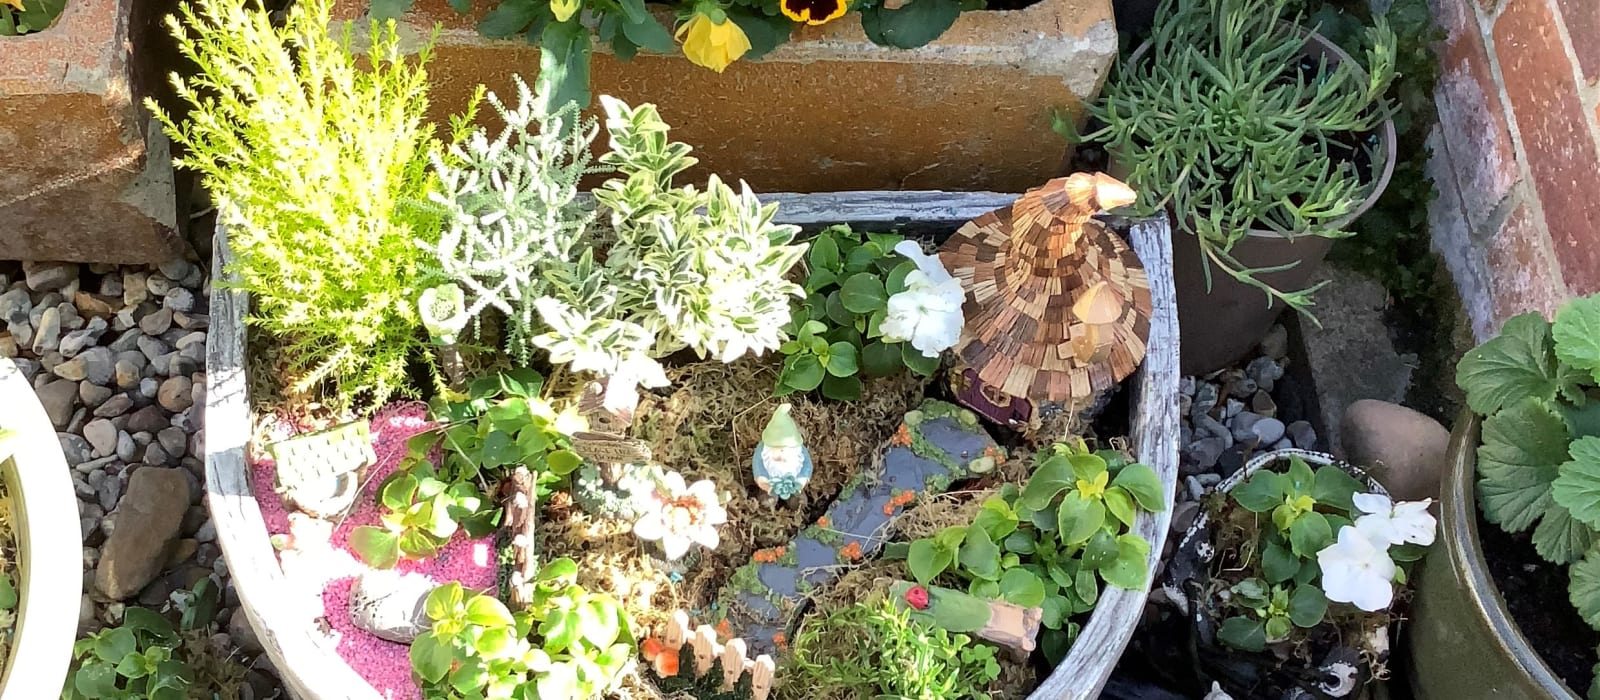 My fairy garden provides a haven just for me